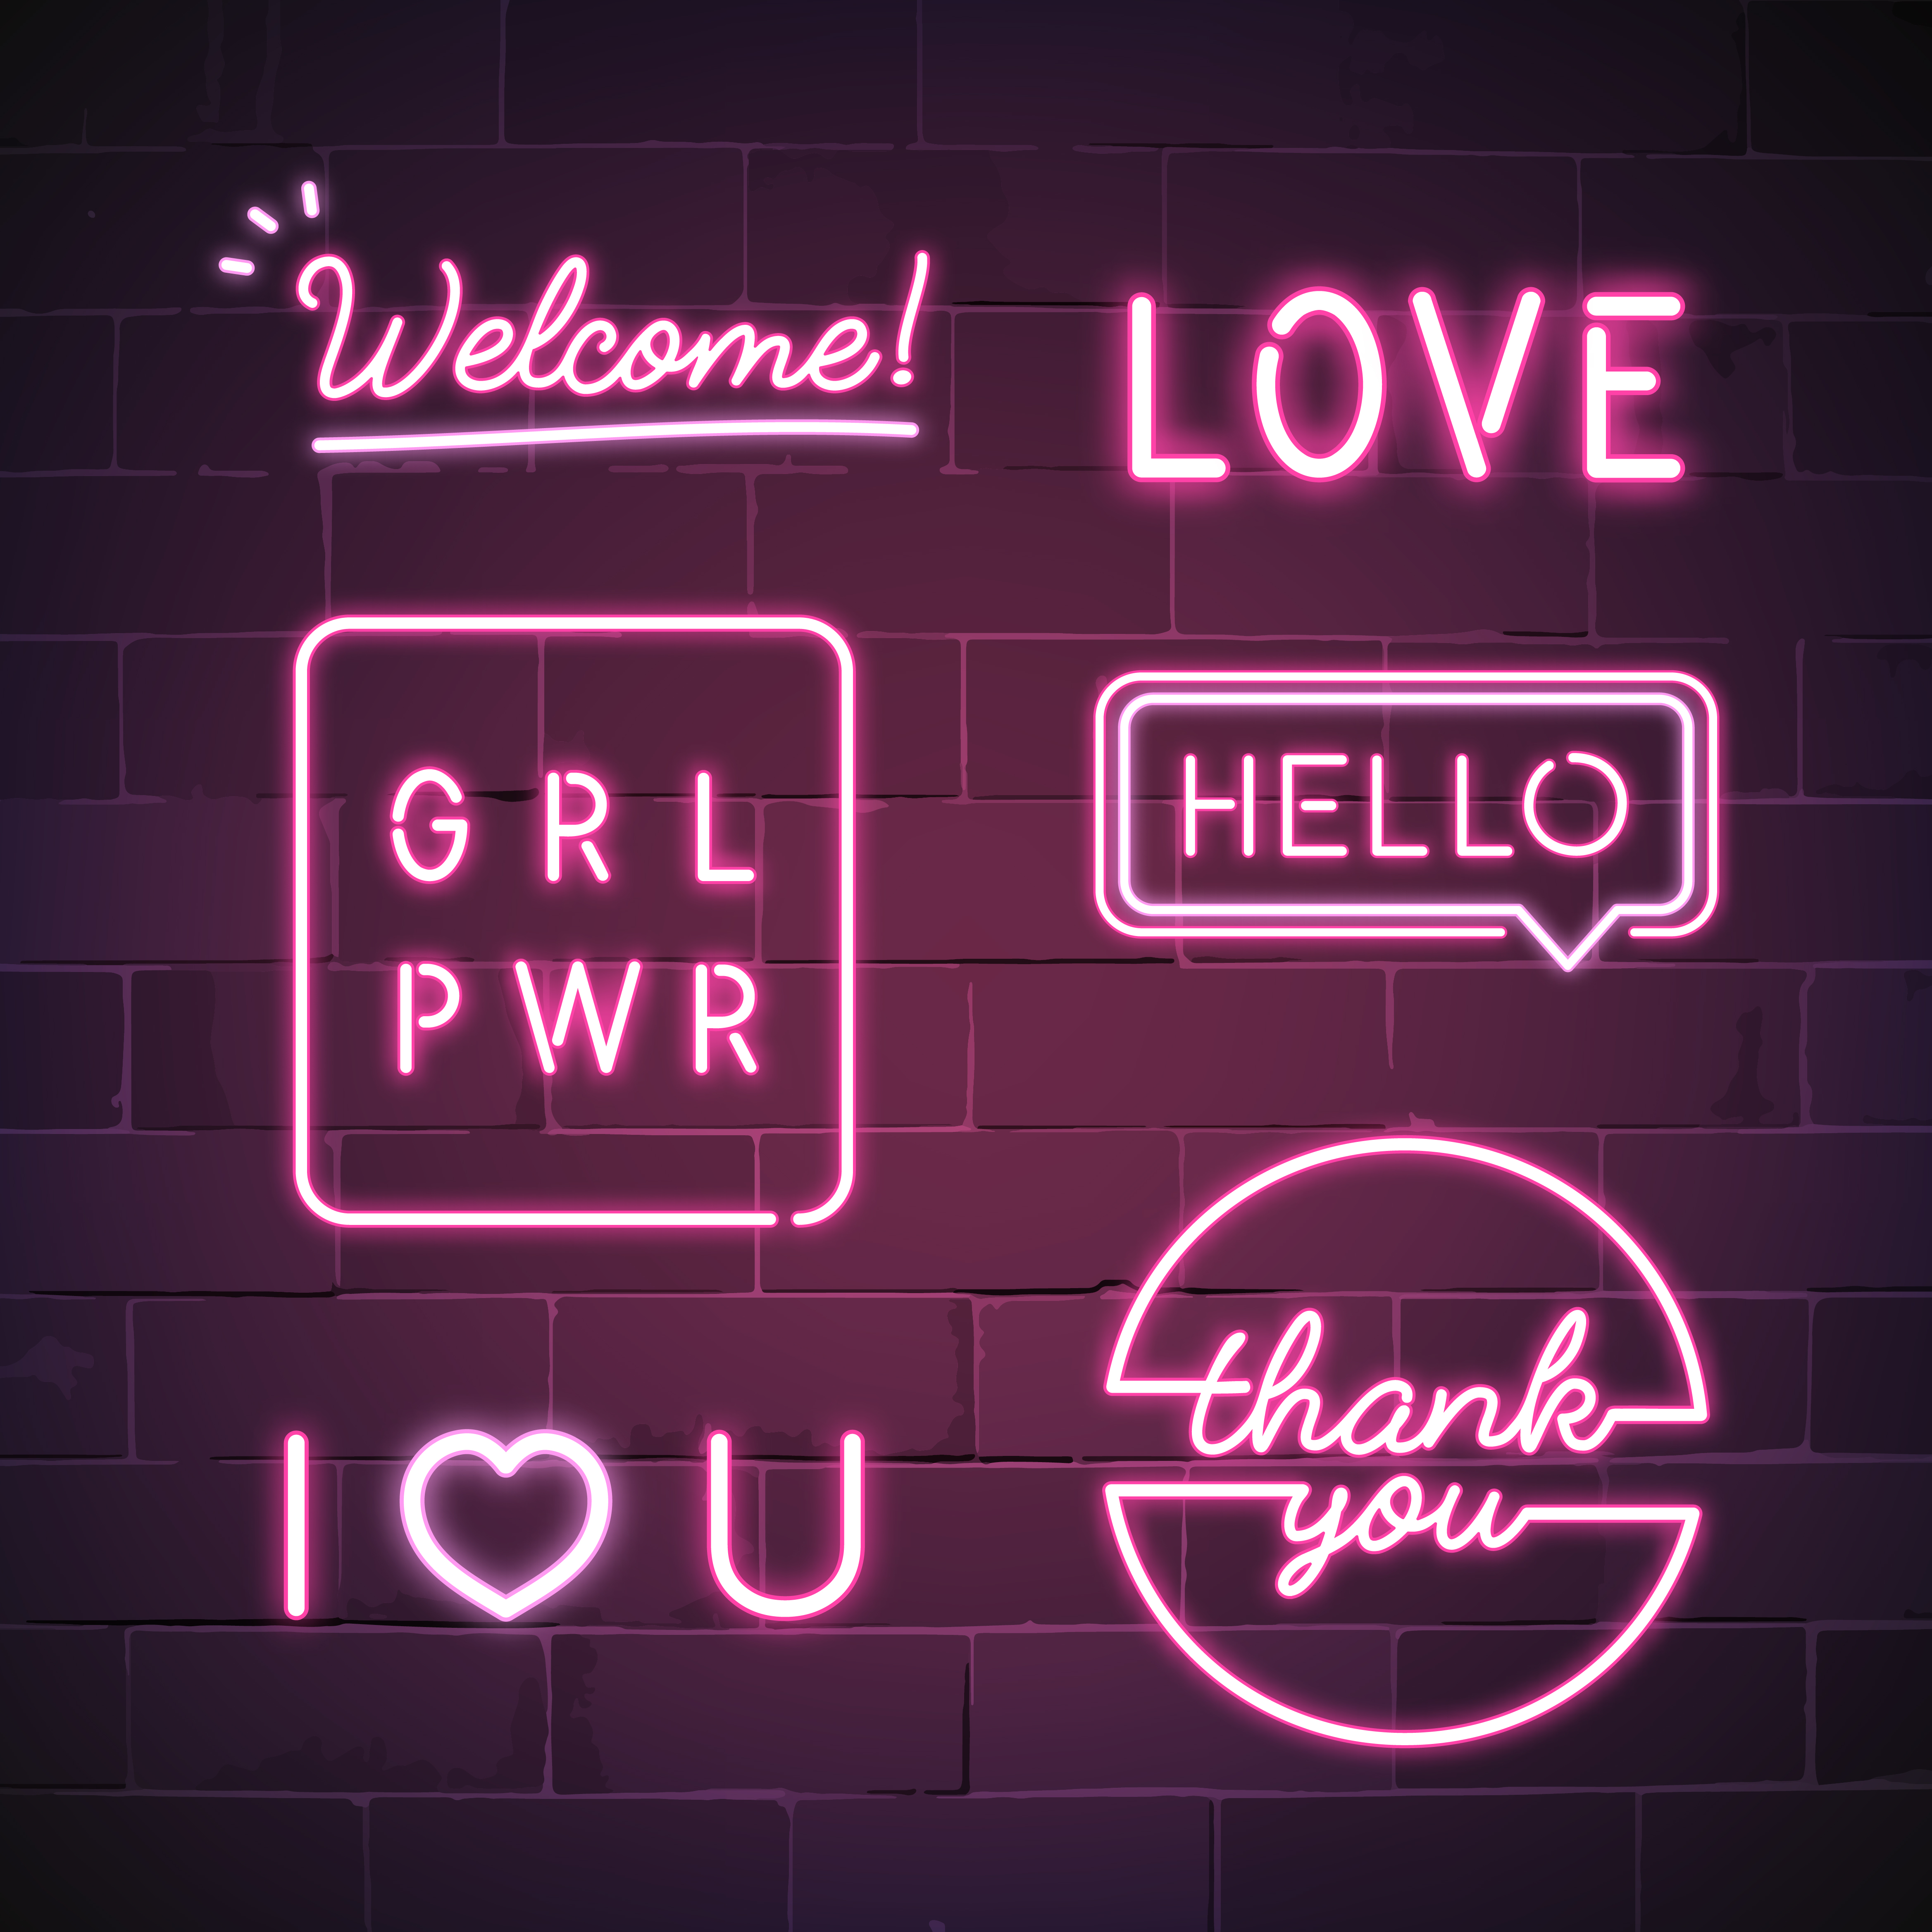 New GRL PWR Girl Power Neon Sign Wall Decor Artwork Light Lamp Display Party